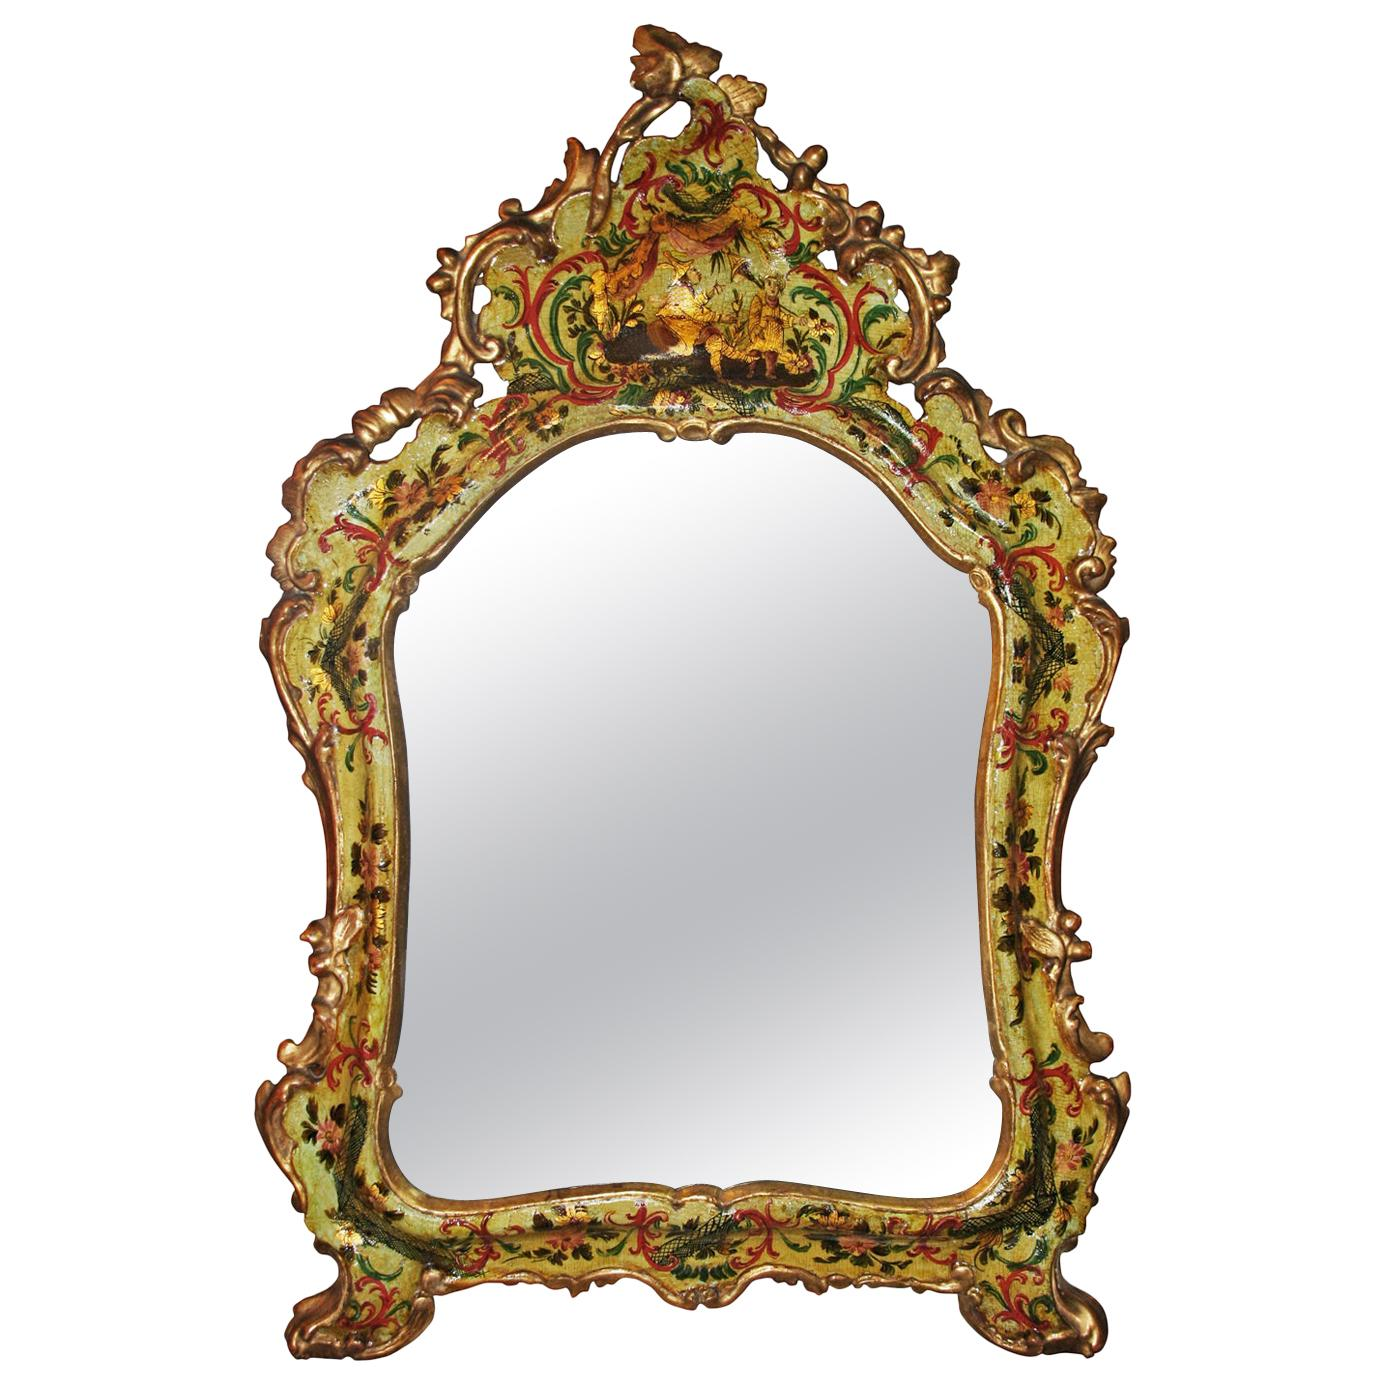 Venice Italy Mid-18th Century Light Green Lacquered Mirror with Mercury Glass